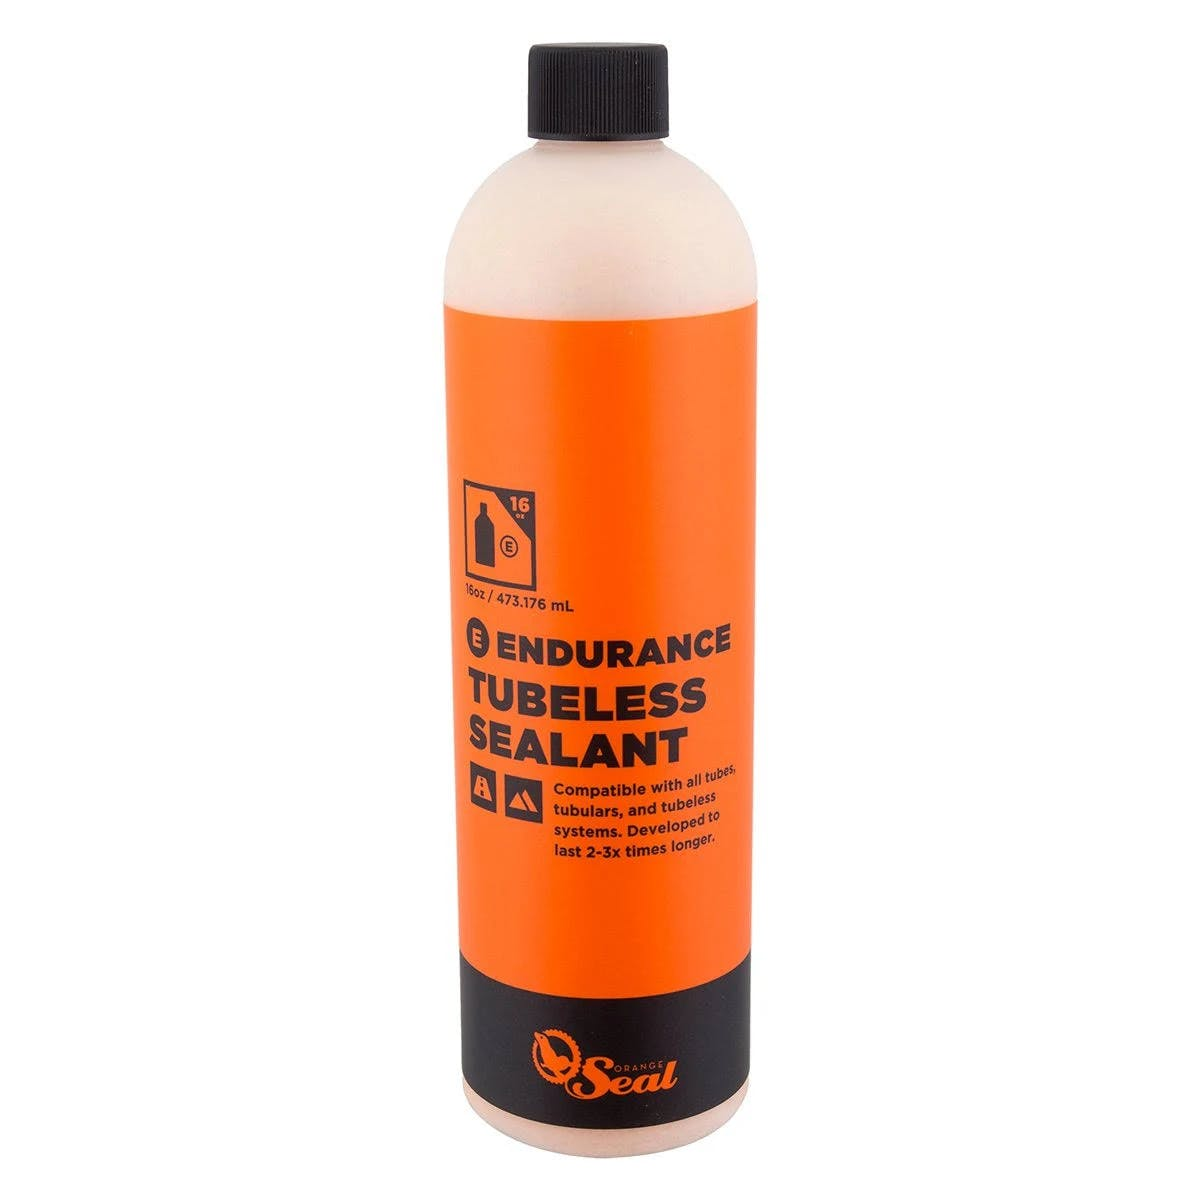 Orange Seal Endurance Tubeless Sealant 16oz Refill